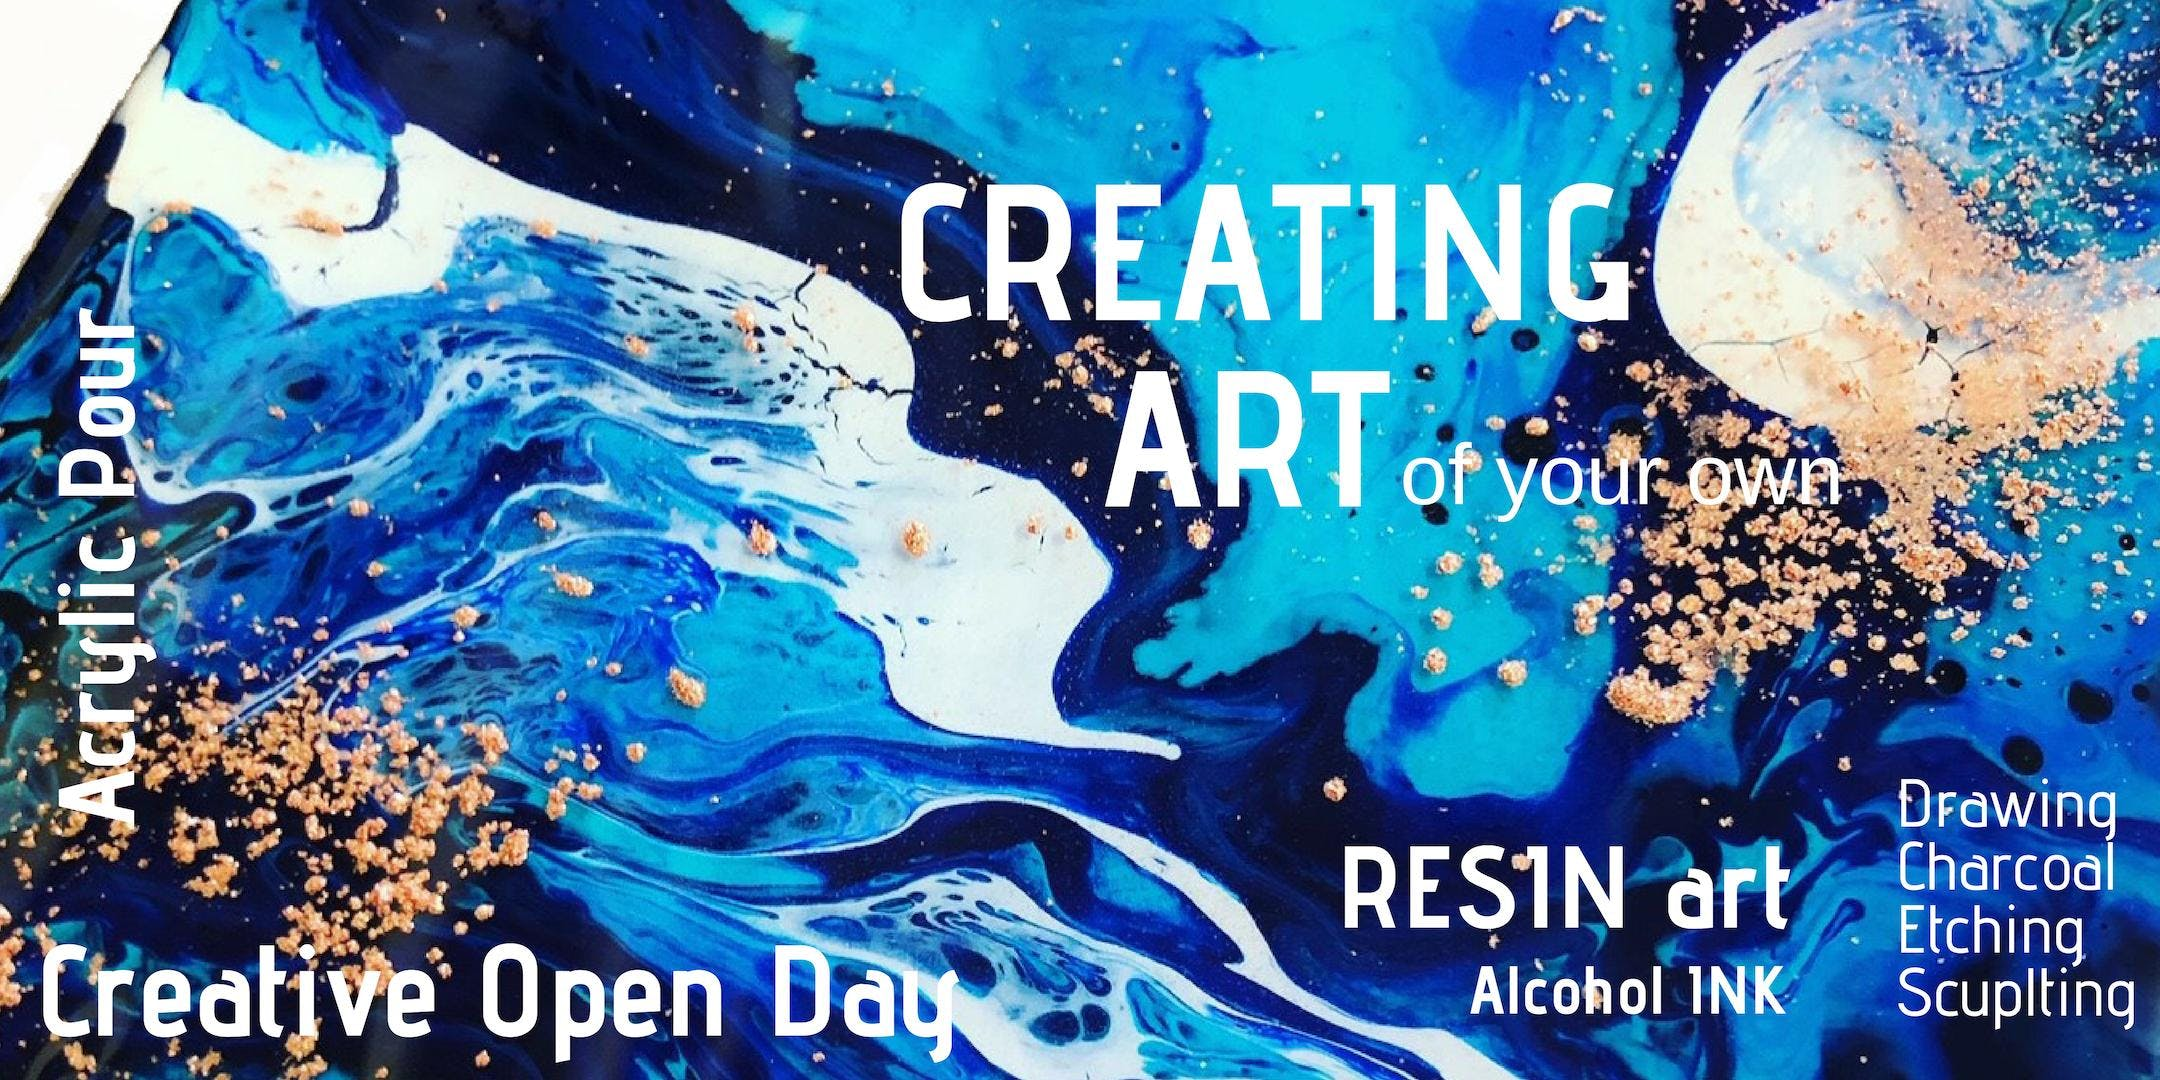 Creating Art - Sunday 17th Mar 12:30pm